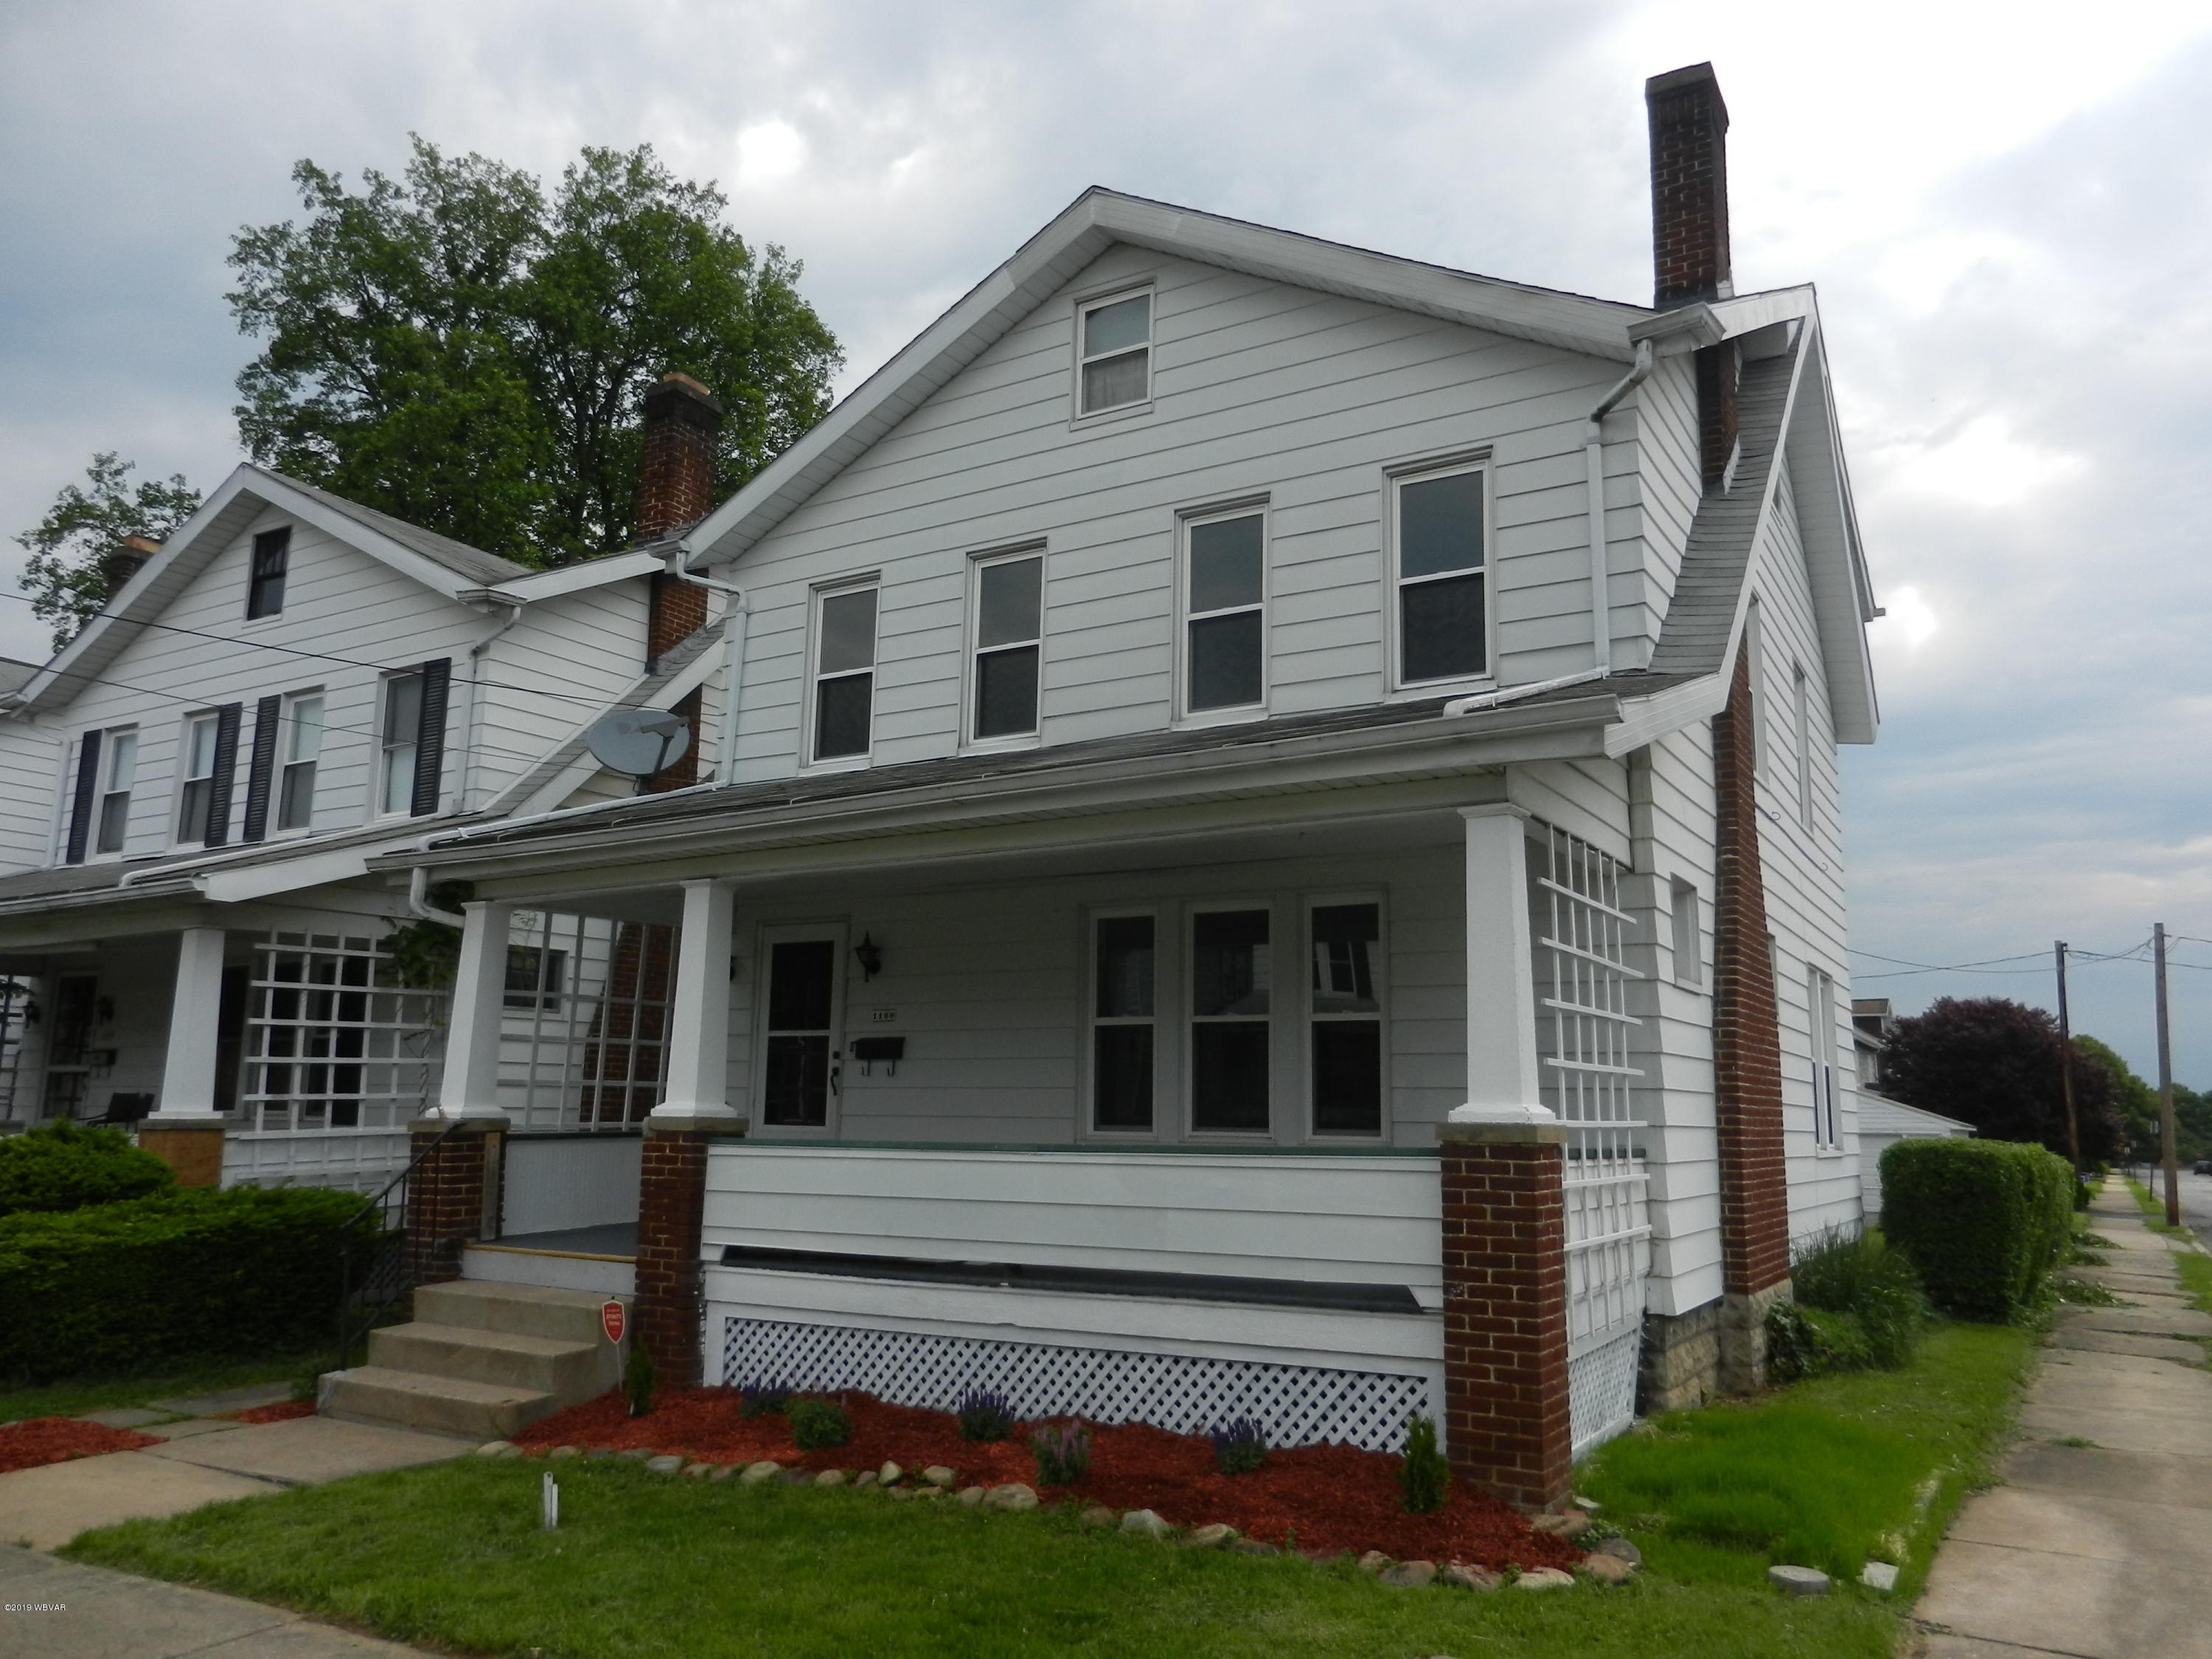 1100 FRANKLIN STREET,Williamsport,PA 17701,4 Bedrooms Bedrooms,1 BathroomBathrooms,Residential,FRANKLIN,WB-86291